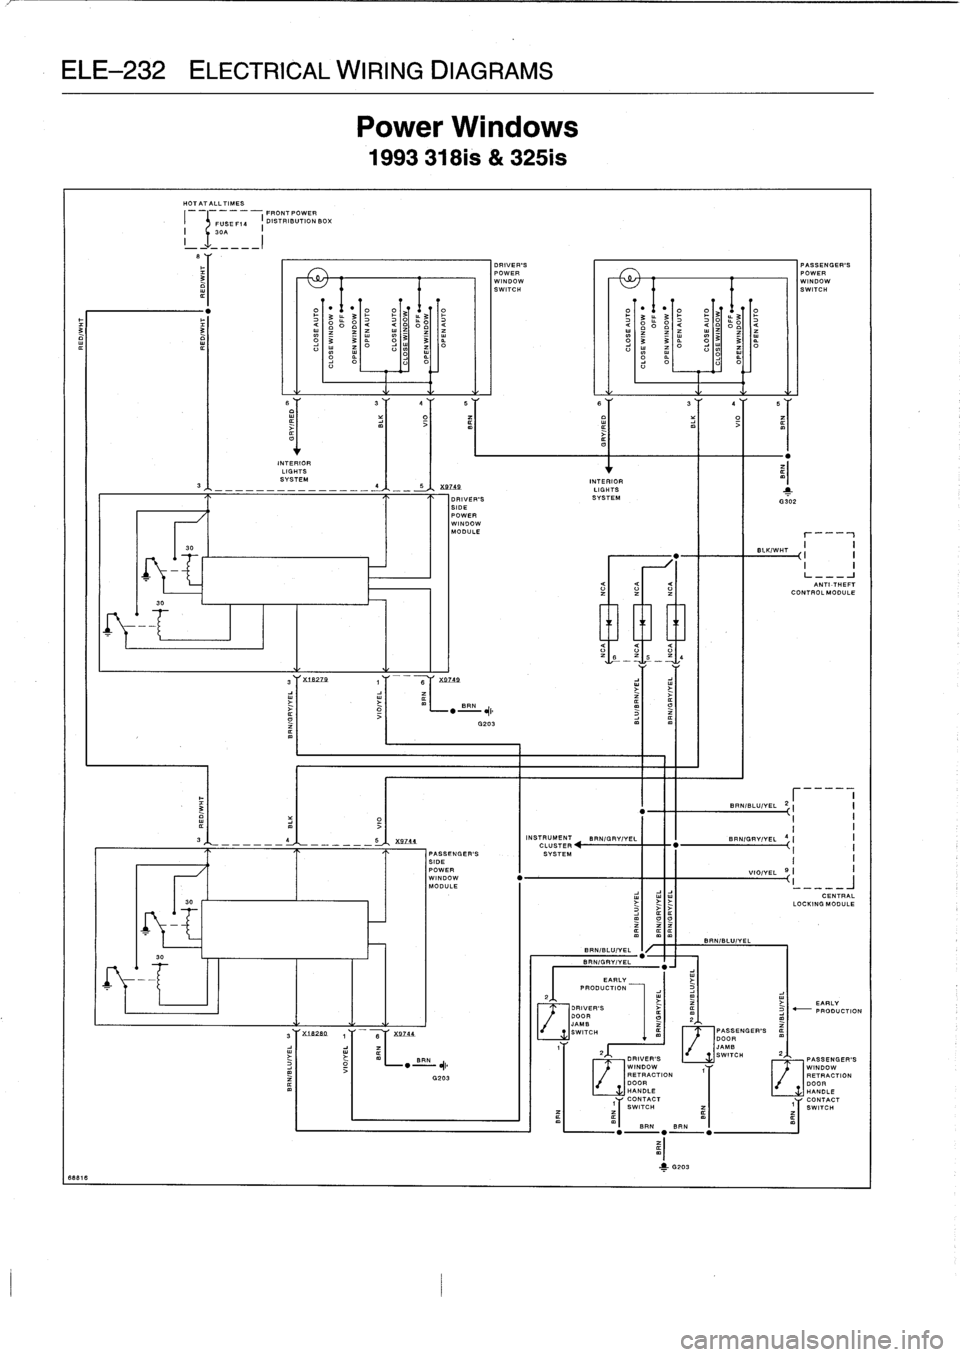 Bmw 325 1992 Fuse Box Usb Wiring Diagrams 325i Traction Control E36 Workshop Manual W960 2800 714 Srchtraction